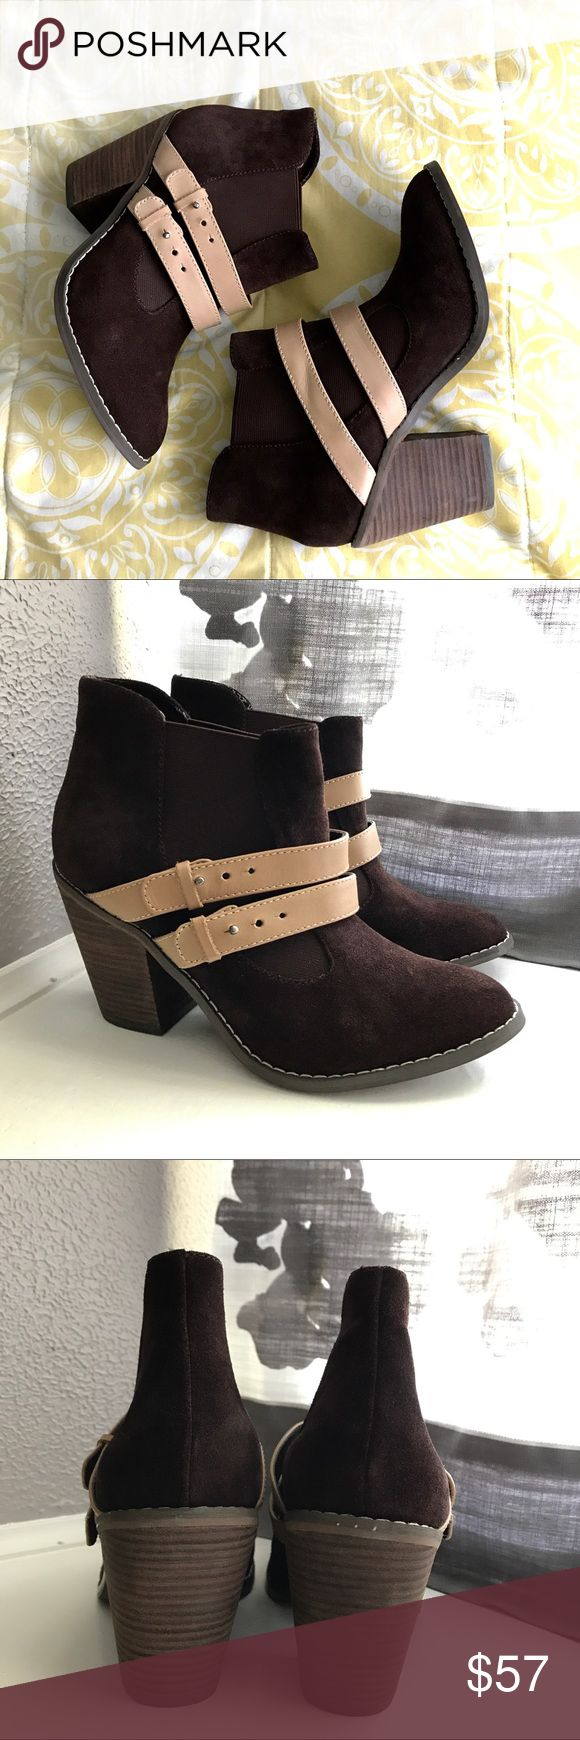 KELSI DAGGER JALYNN BOOTIE Jalynn bootie in Cocoa Brown/Natural. Cow Suede material. Only worn once. Kelsi Dagger Shoes Ankle Boots & Booties